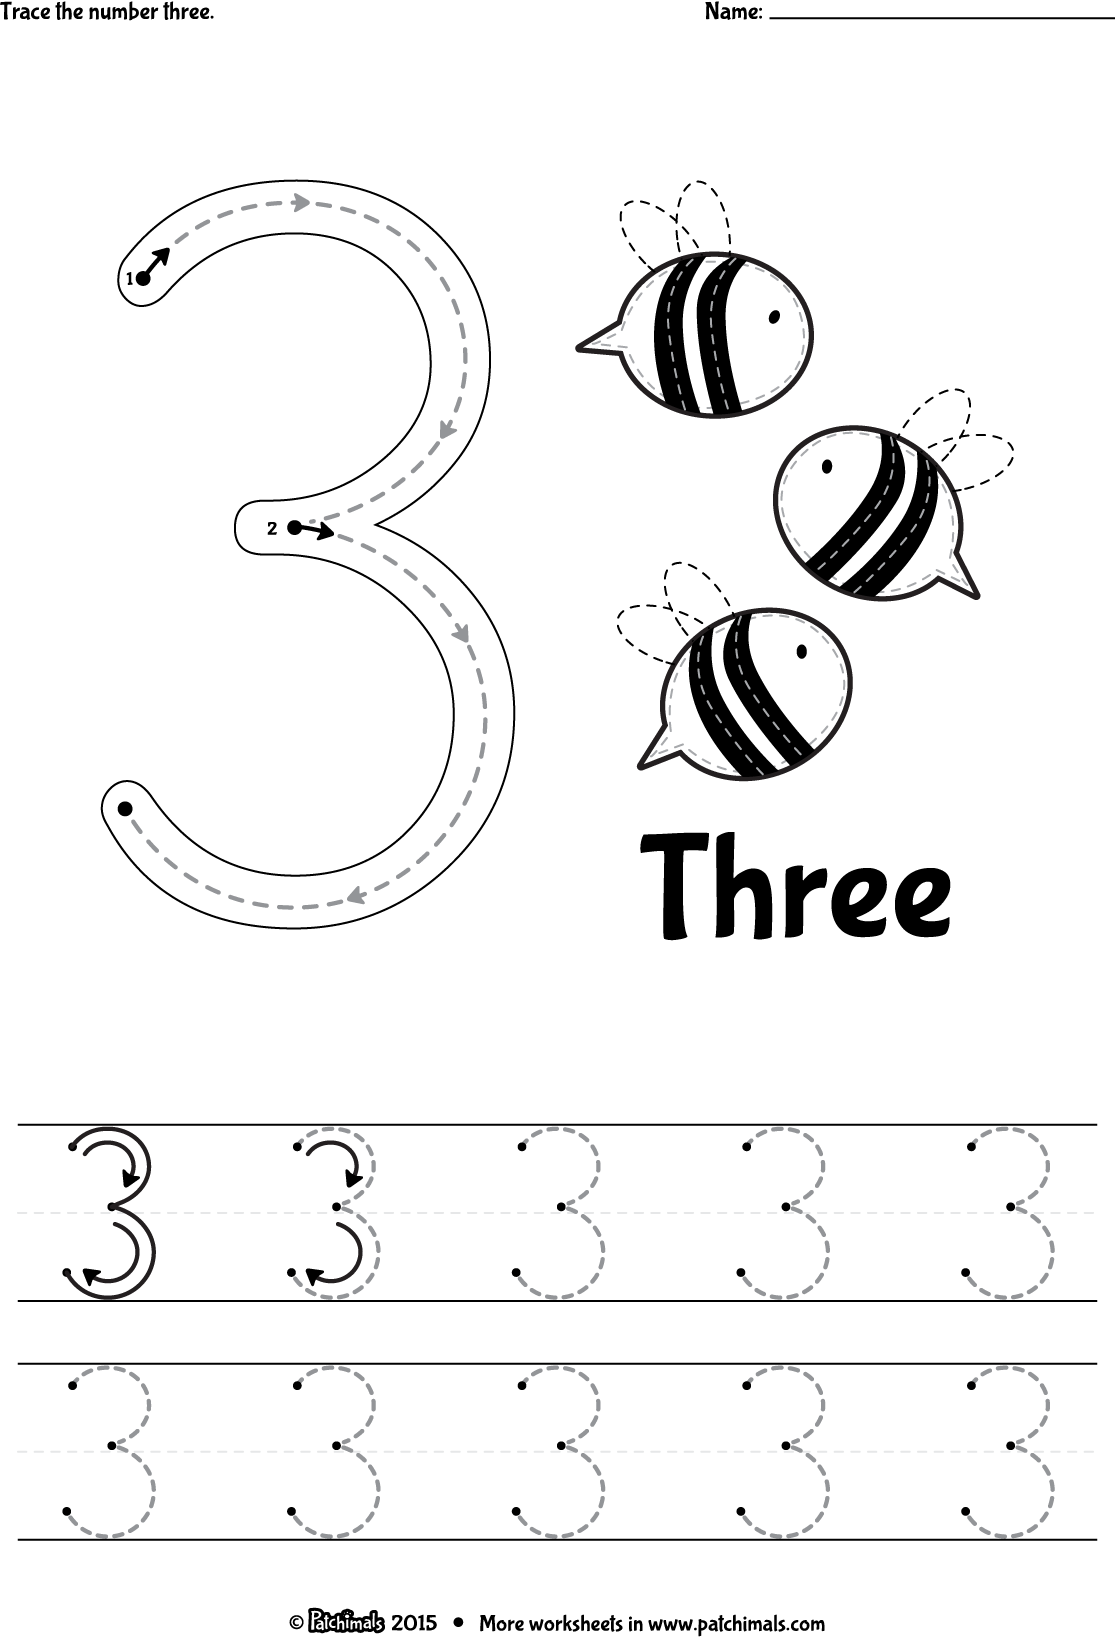 Patchimals Educational and cultural contents for children apps – Number 3 Worksheets